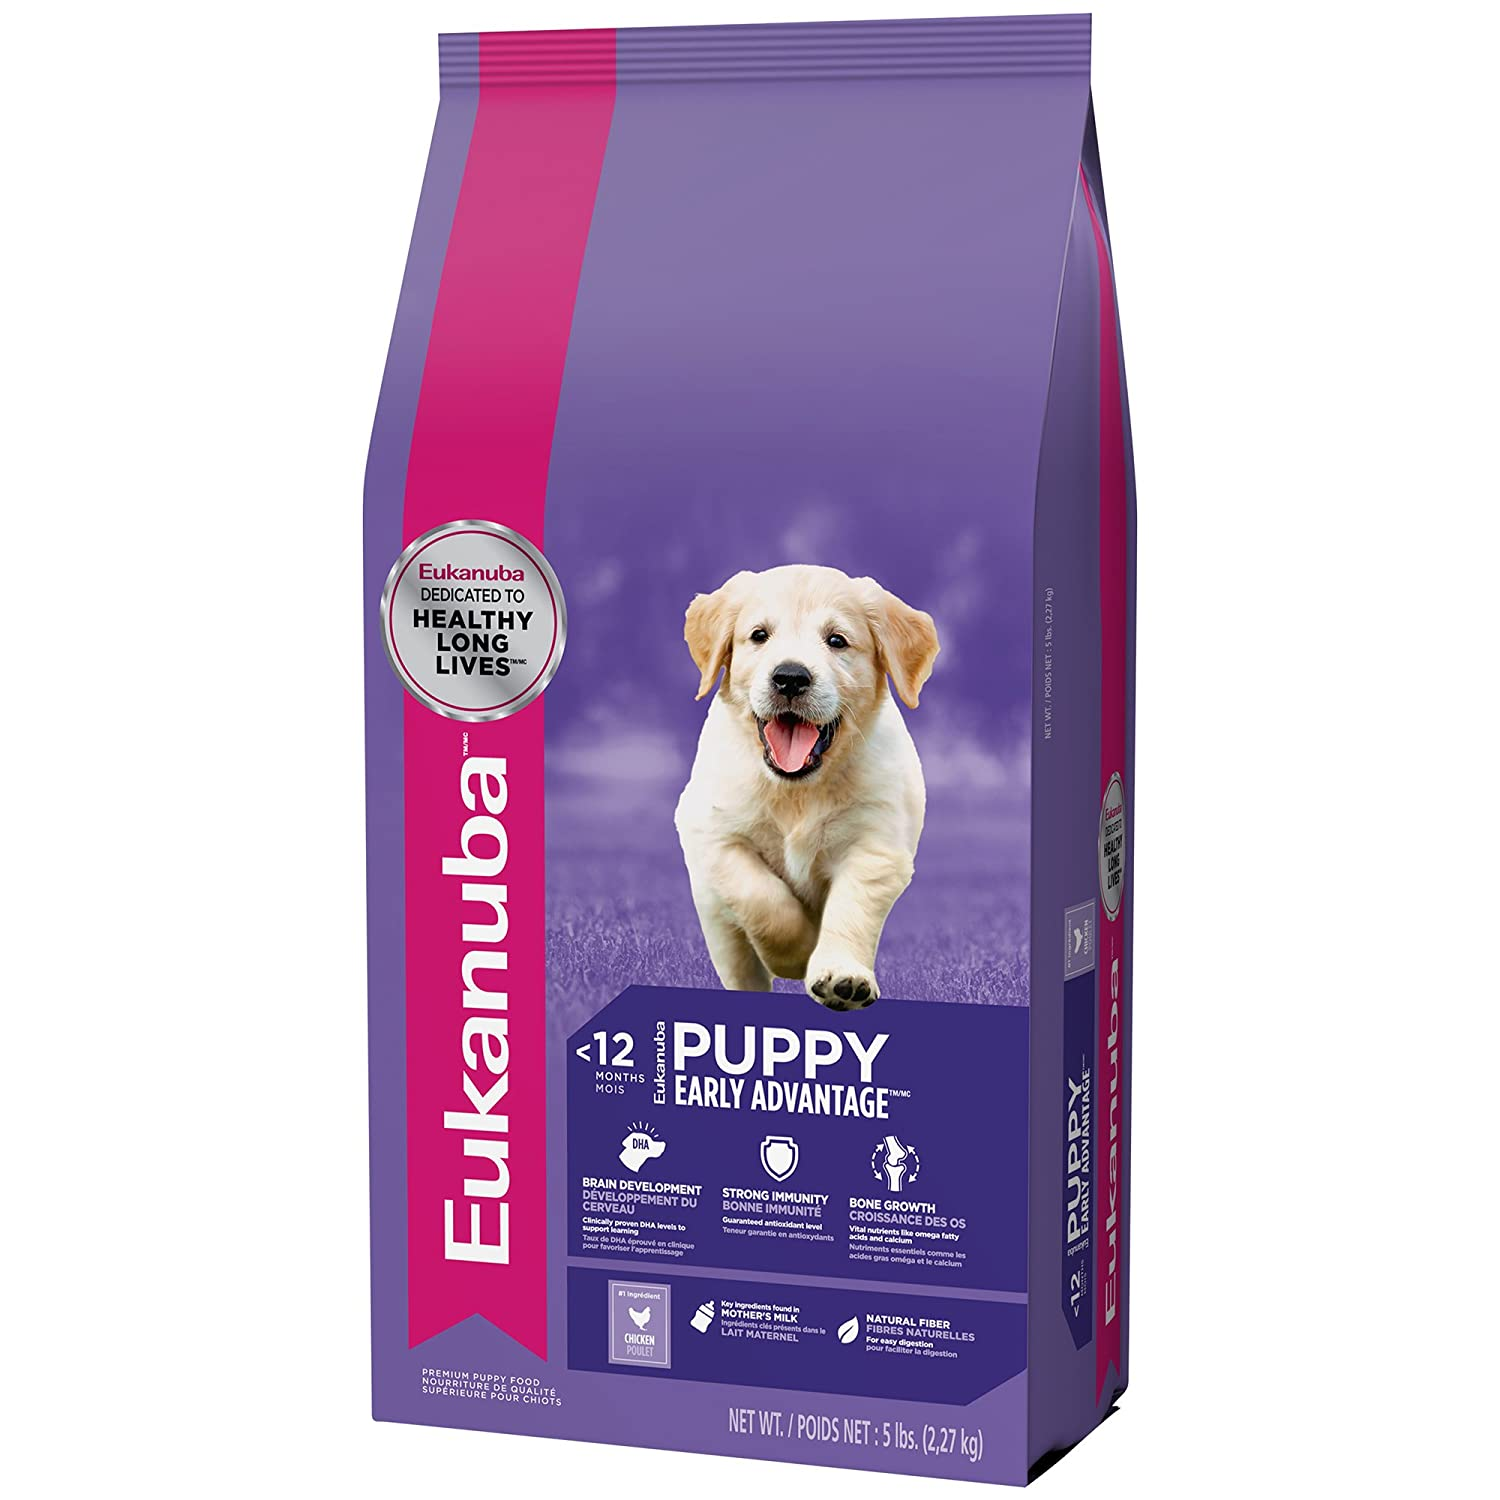 Eukanuba Puppy Food >> Amazon Com Eukanuba Puppy Growth Puppy Food 5 Pounds Pet Supplies